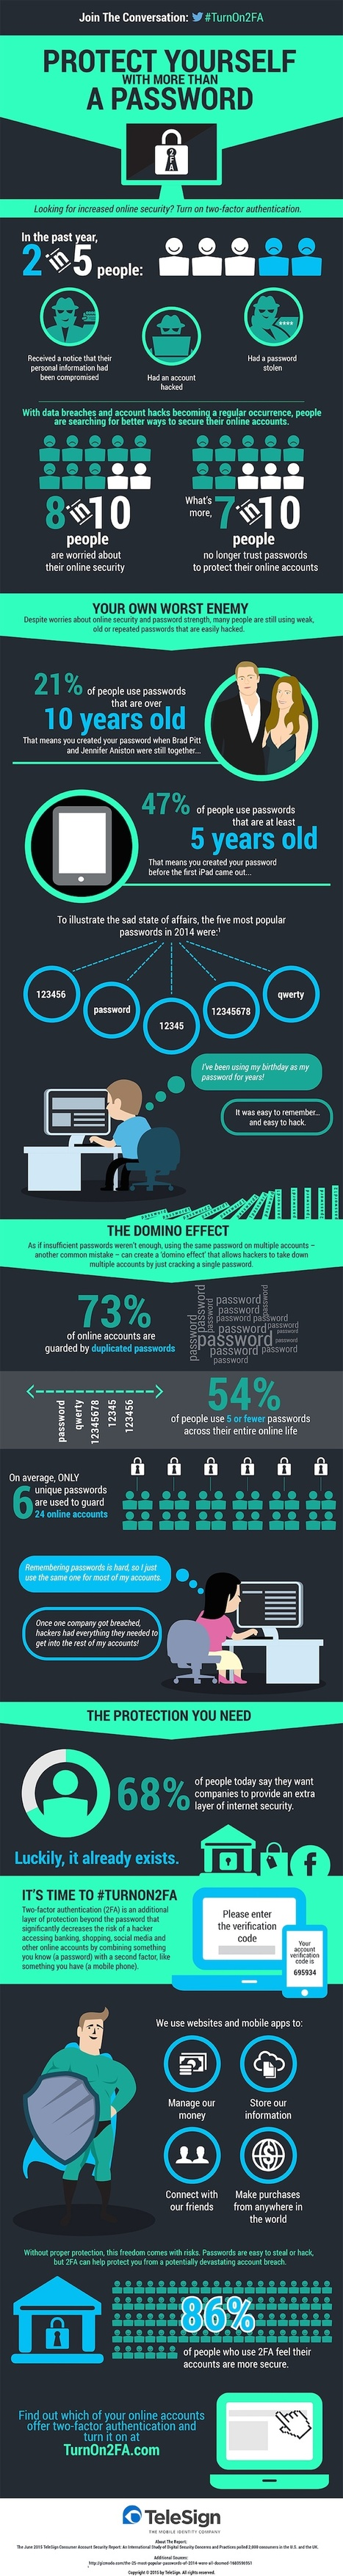 Password Statistics: The Good, the Bad, and the Ugly #Infographic | MarketingHits | Scoop.it